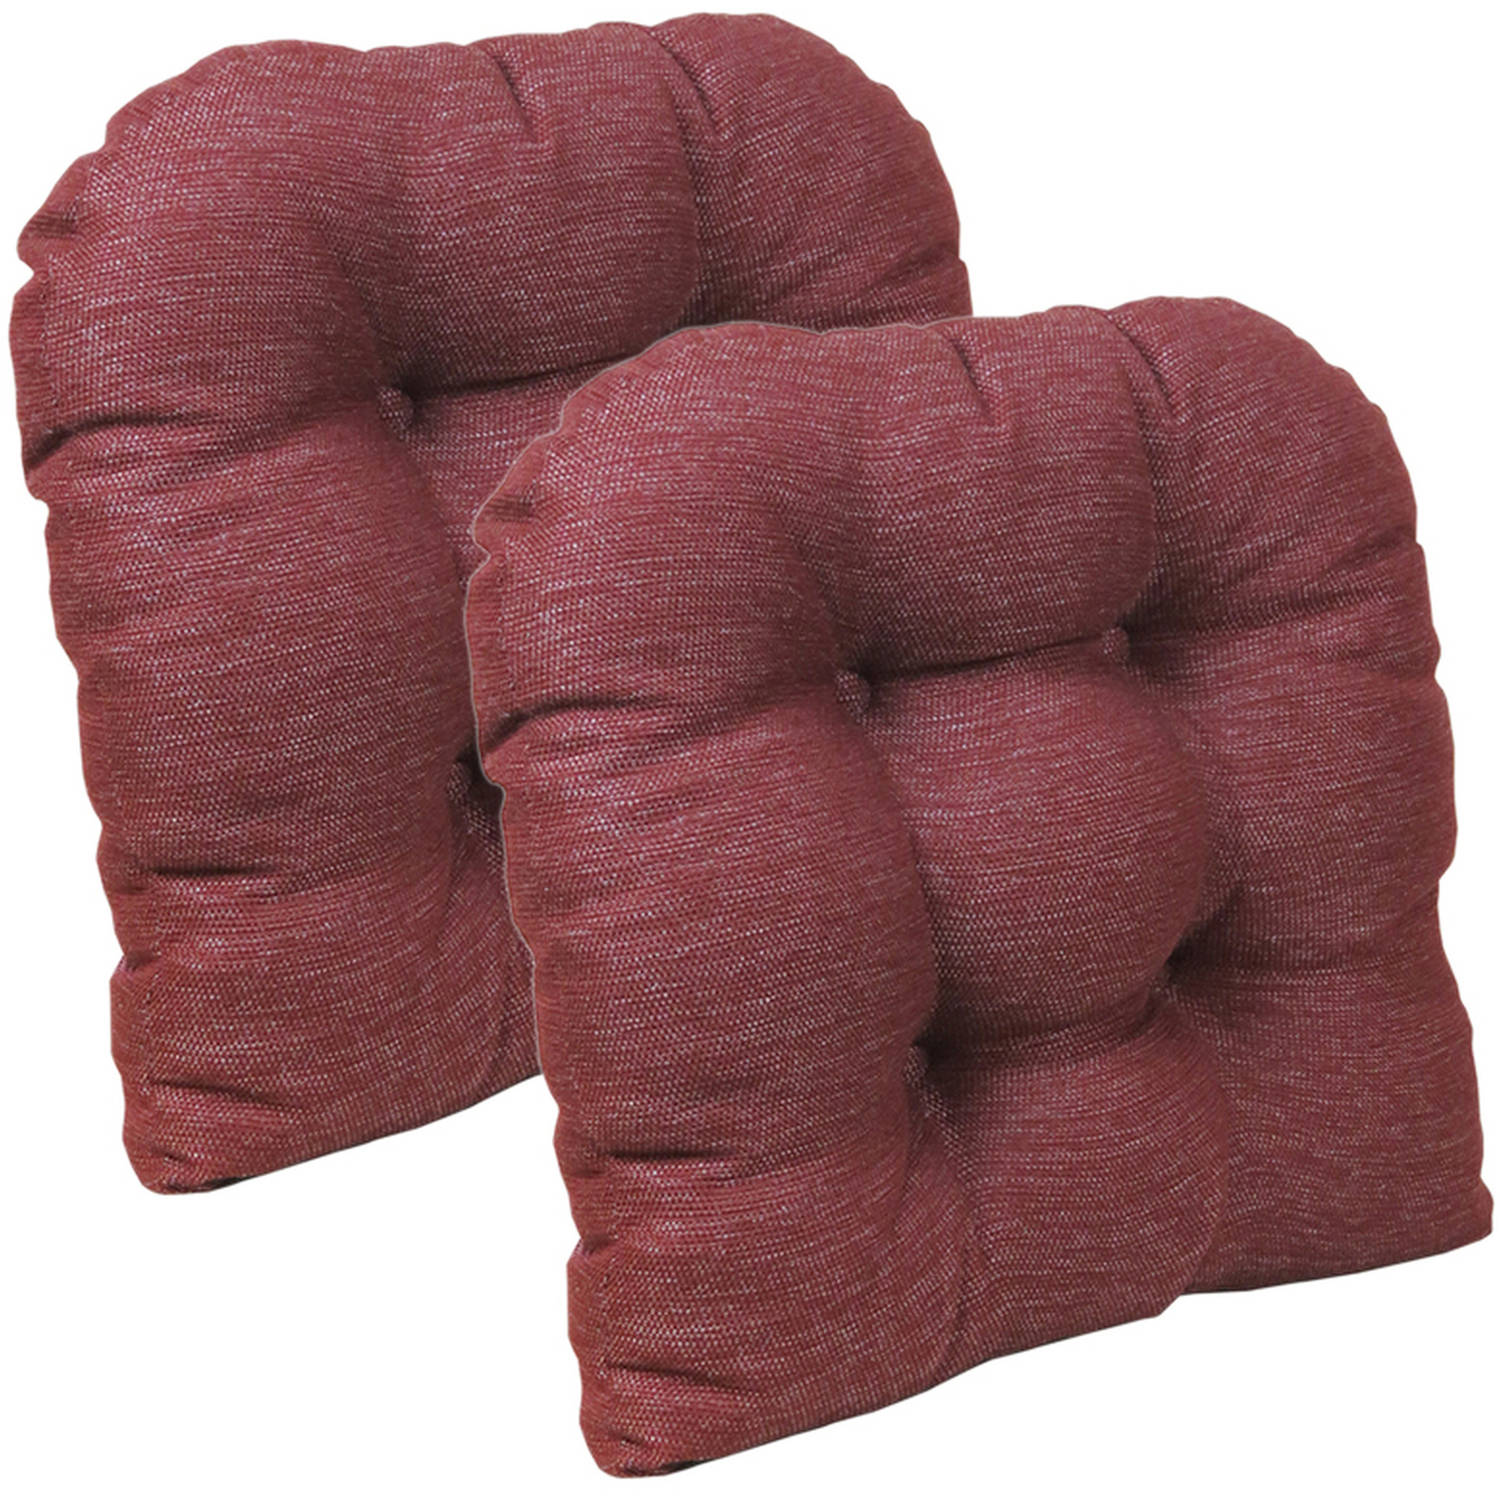 "Gripper Non-Slip 15"" x 15"" Stoked Tufted Universal Chair Cushions, Set of 2"